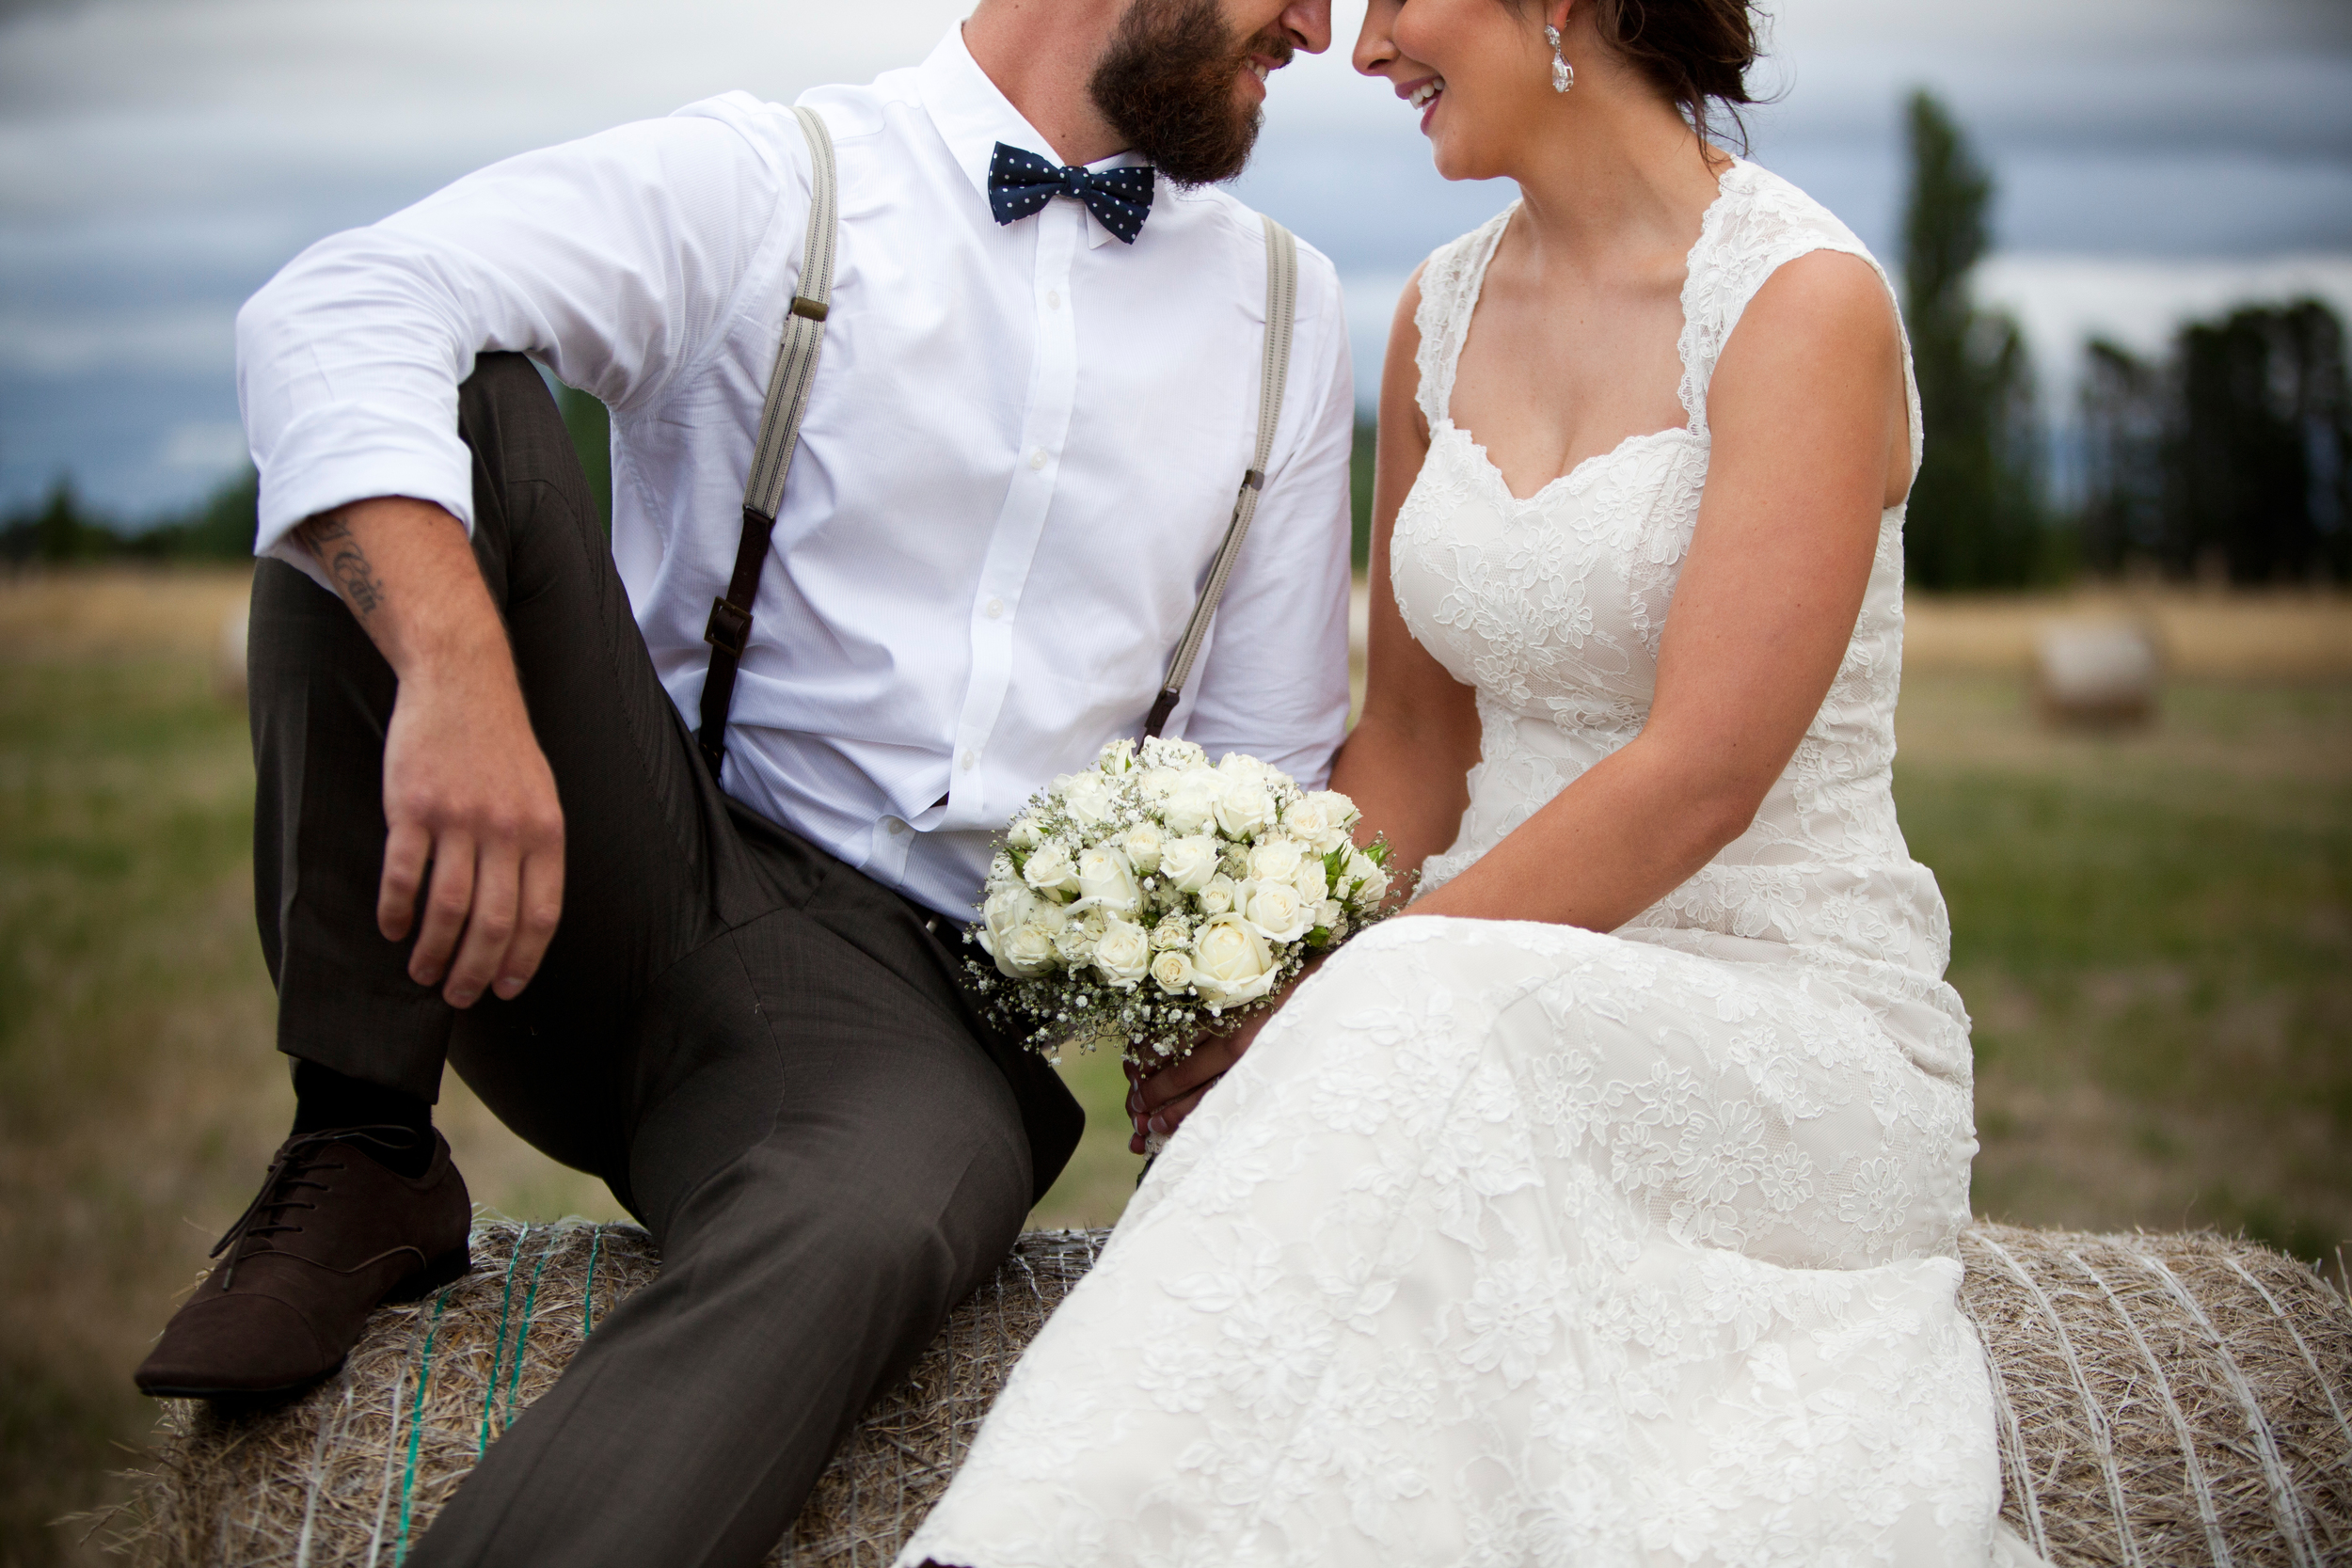 Wedding Photography at Grazing near Canberra